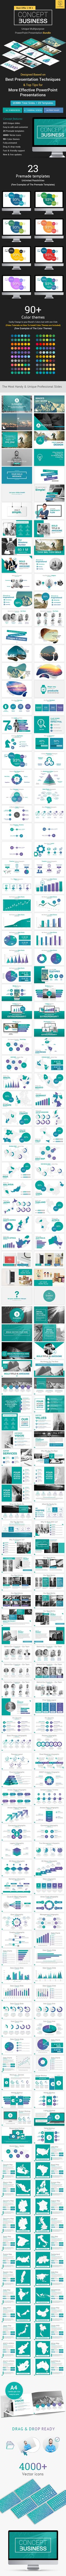 Professional and clean PowerPoint presentation Bundle that designed based on Best Presentation techniques and top tips for more effective PowerPoint presentations.  Concept Bundle gives you unlimited possibilities to make your creative presentation in very short time.